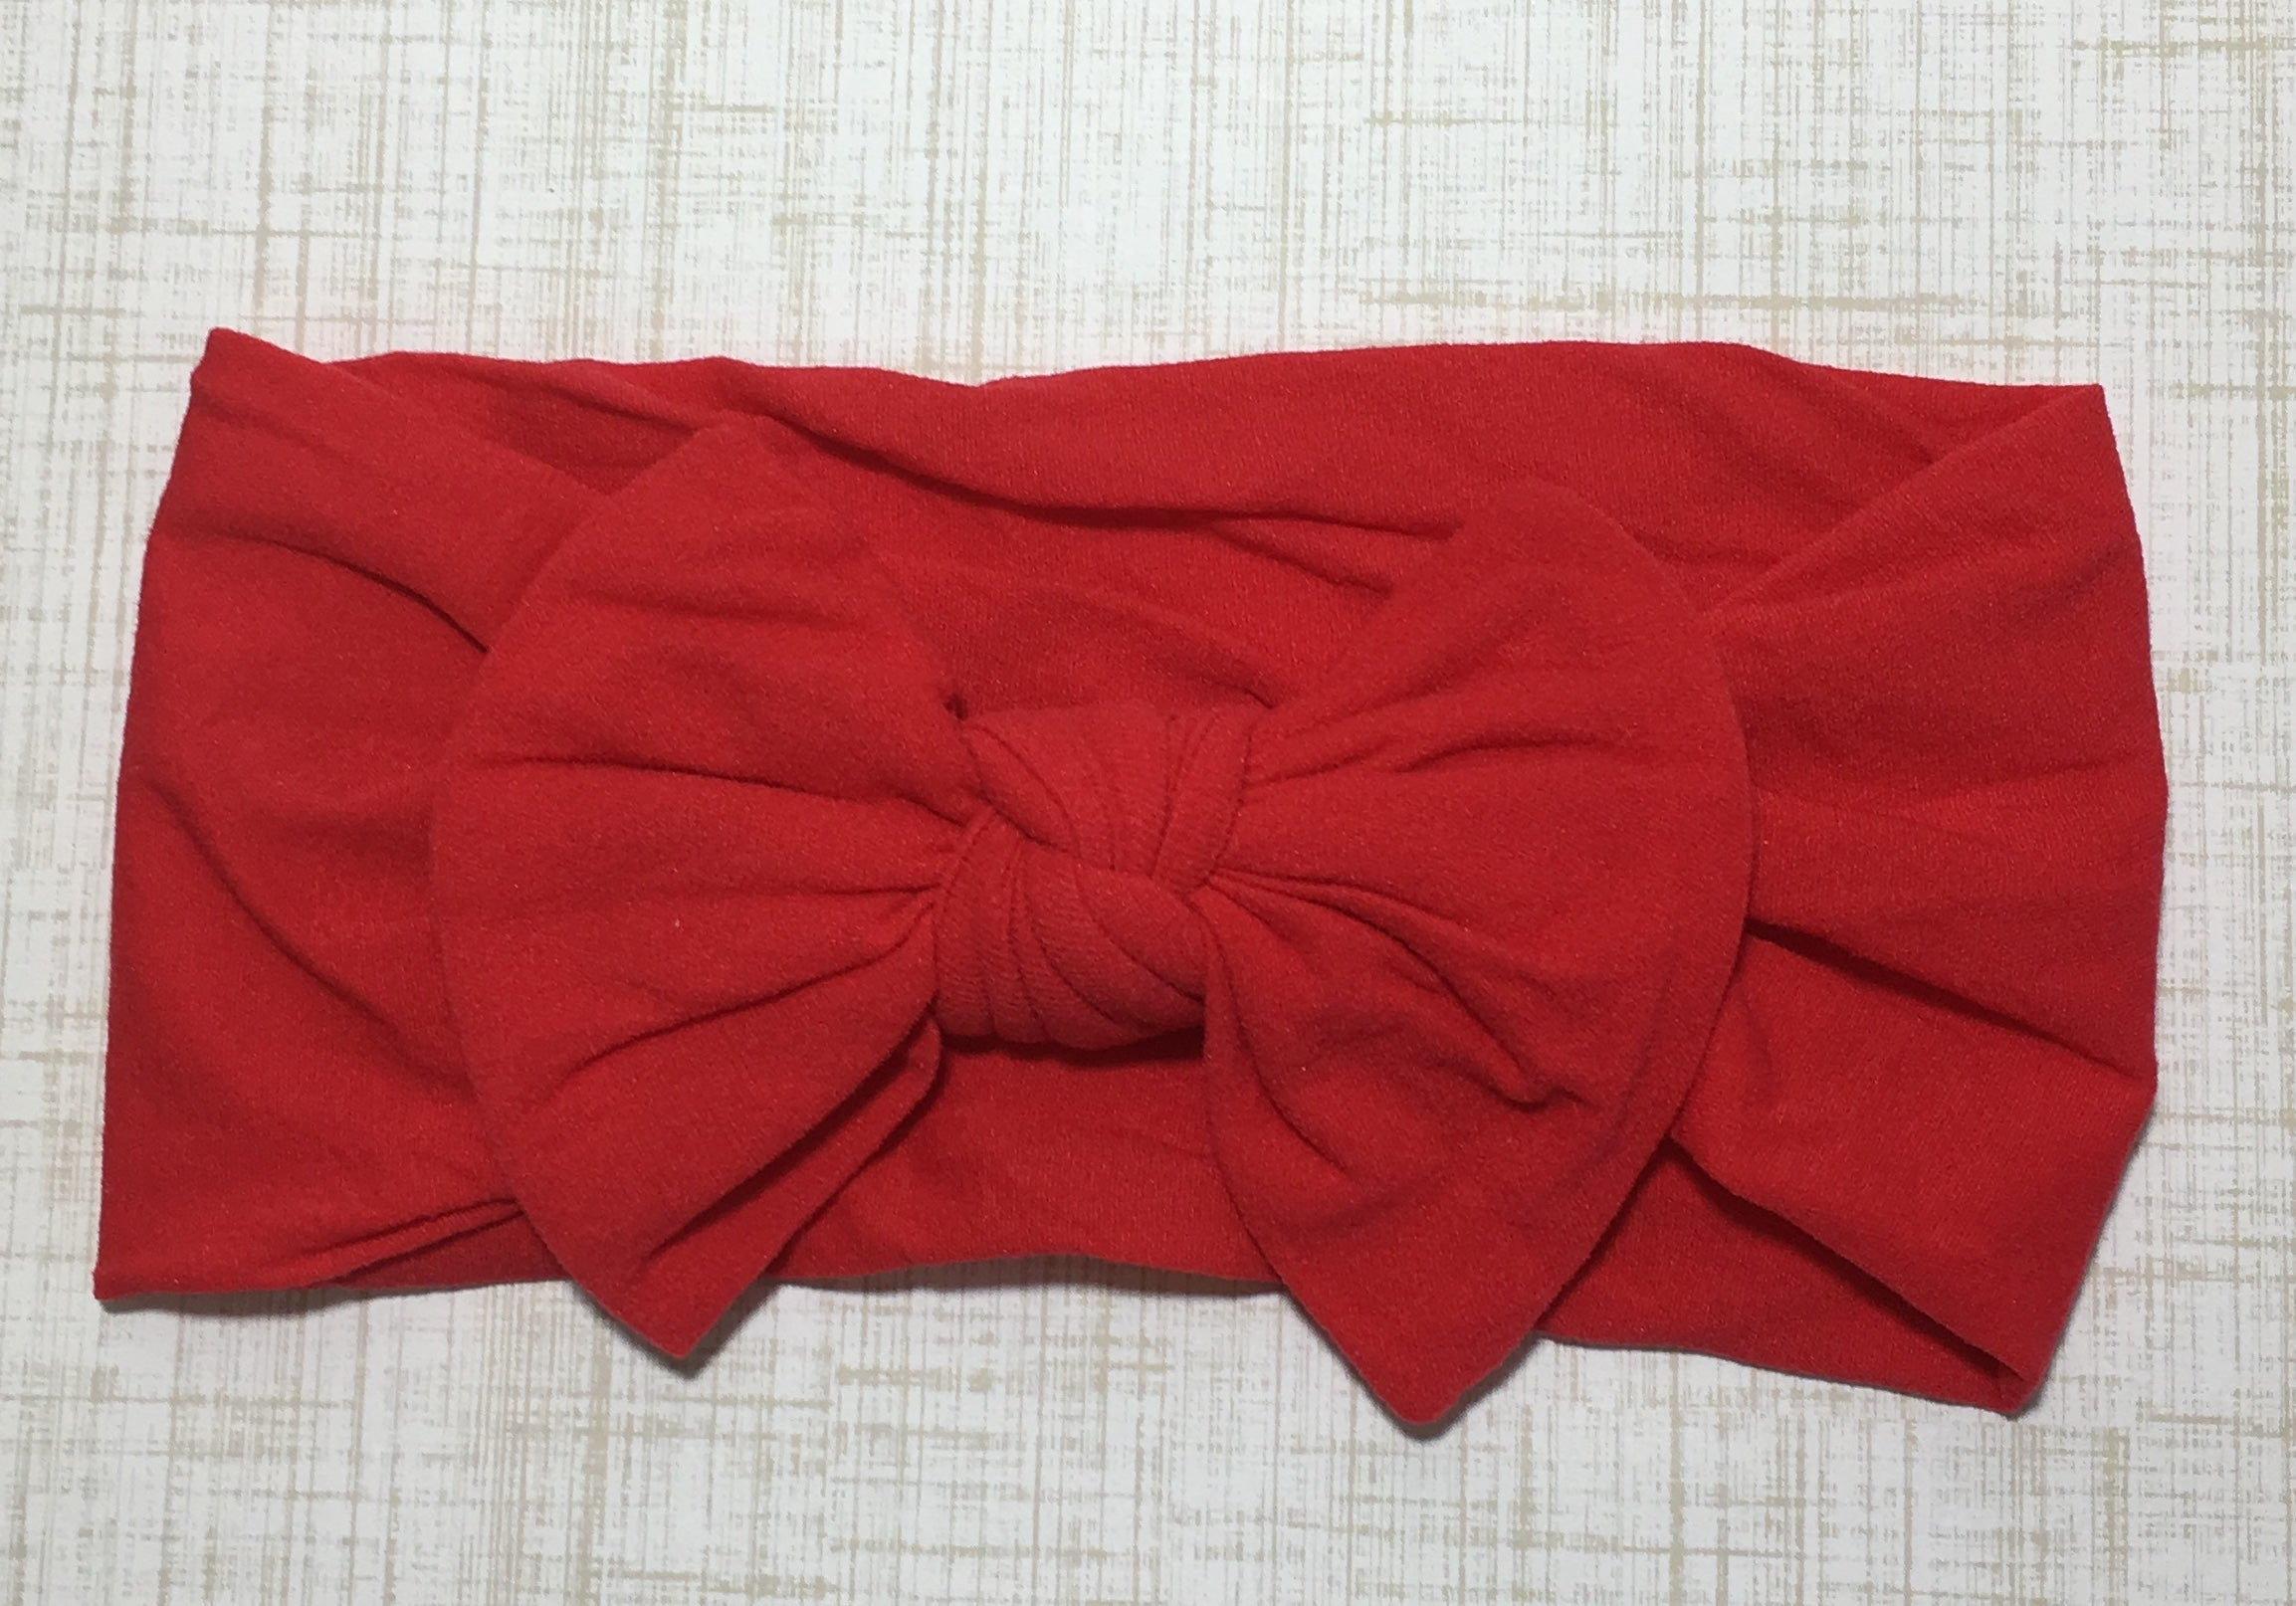 Nylon Ballet Bow Headband in Red - shabbyflowers.com